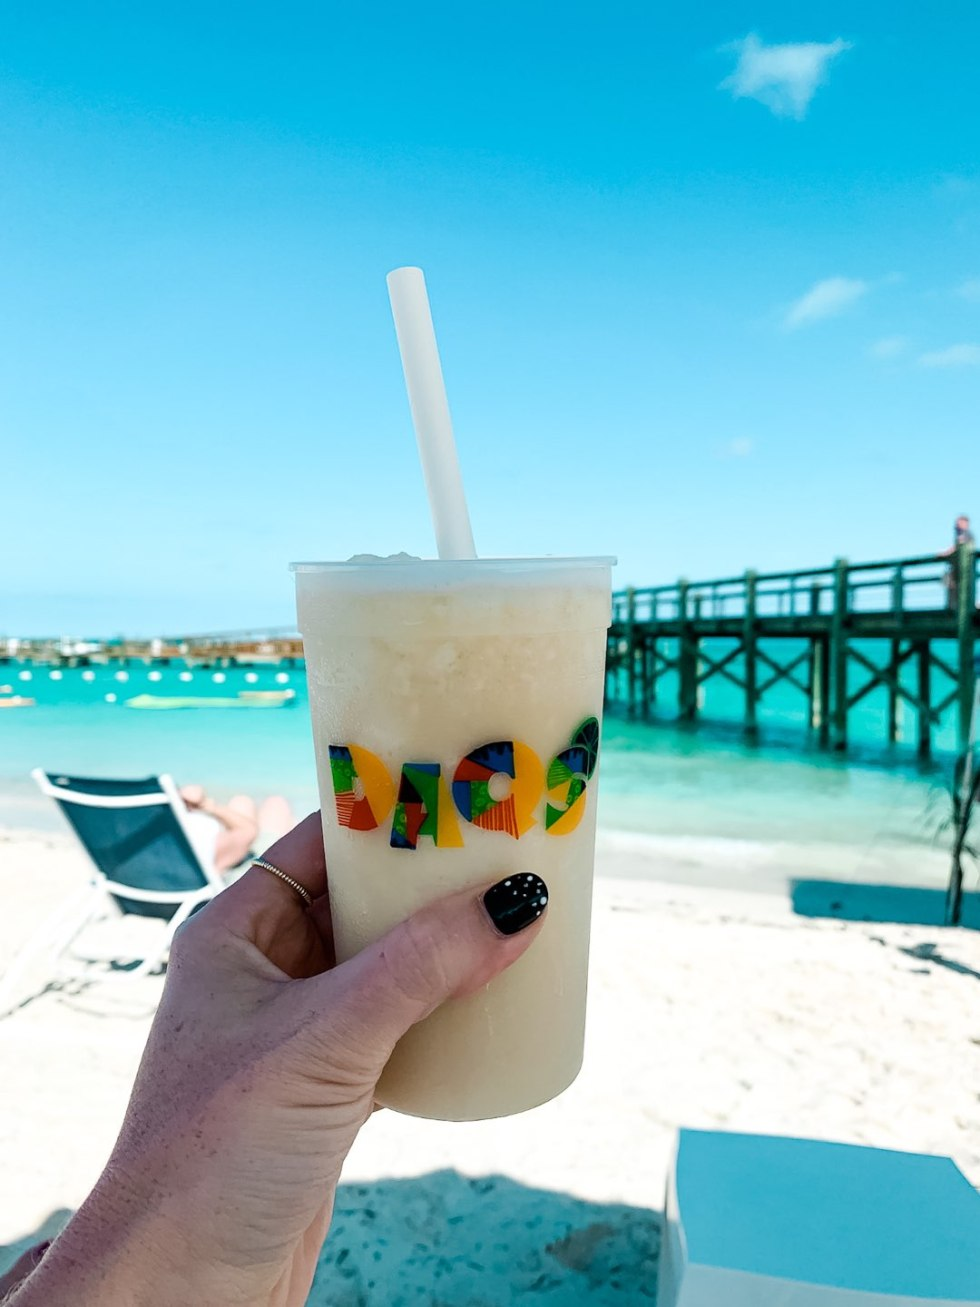 Warming Up in the Bahamas: the Best Things to Do at Baha Mar - I'm Fixin' To - @mbg0112 | Warming Up in the Bahamas: the Best Things to Do in Baha Mar by popular North Carolina travel blog, I'm Fixin' To: image of a woman holding a drink on the beach in the Bahamas.